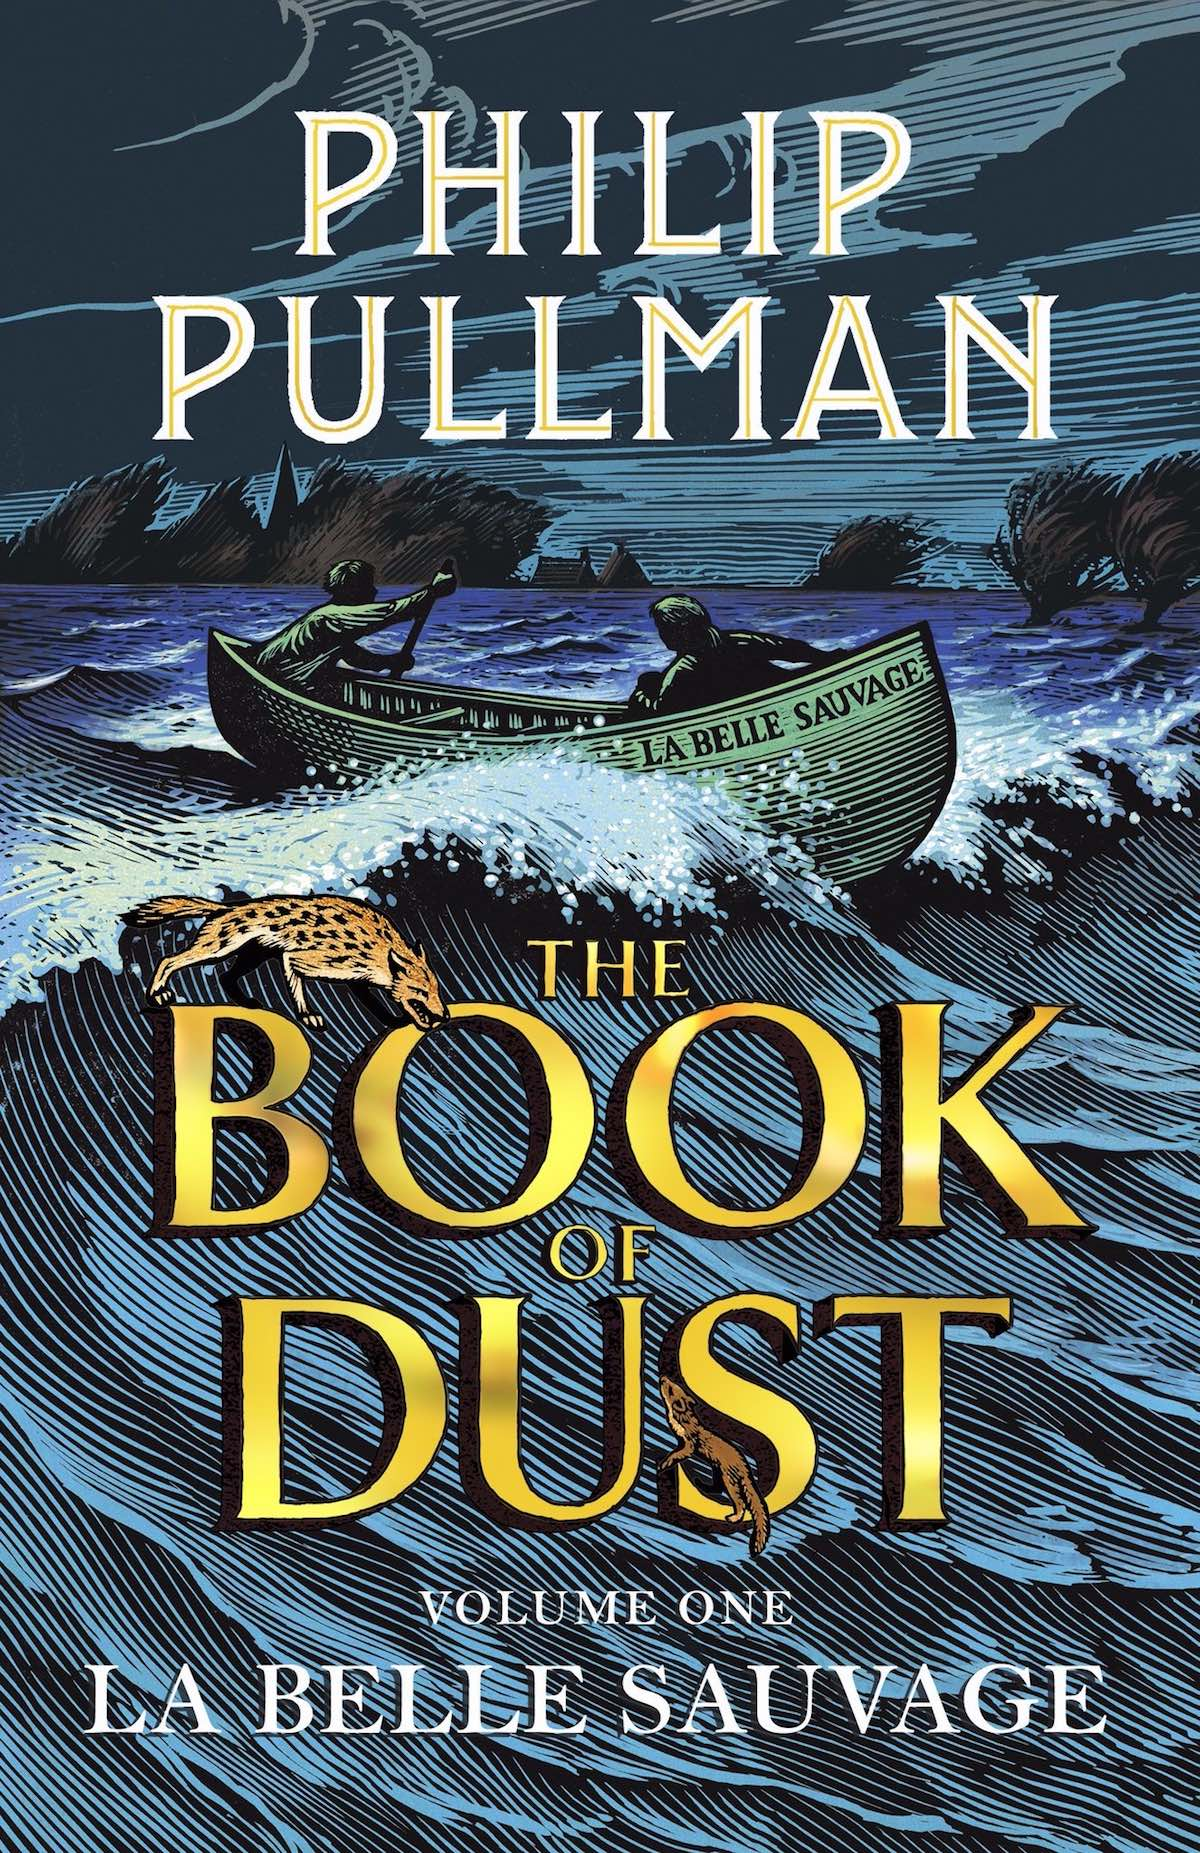 Book Cover Forros Uk : Behold the covers for philip pullman s book of dust